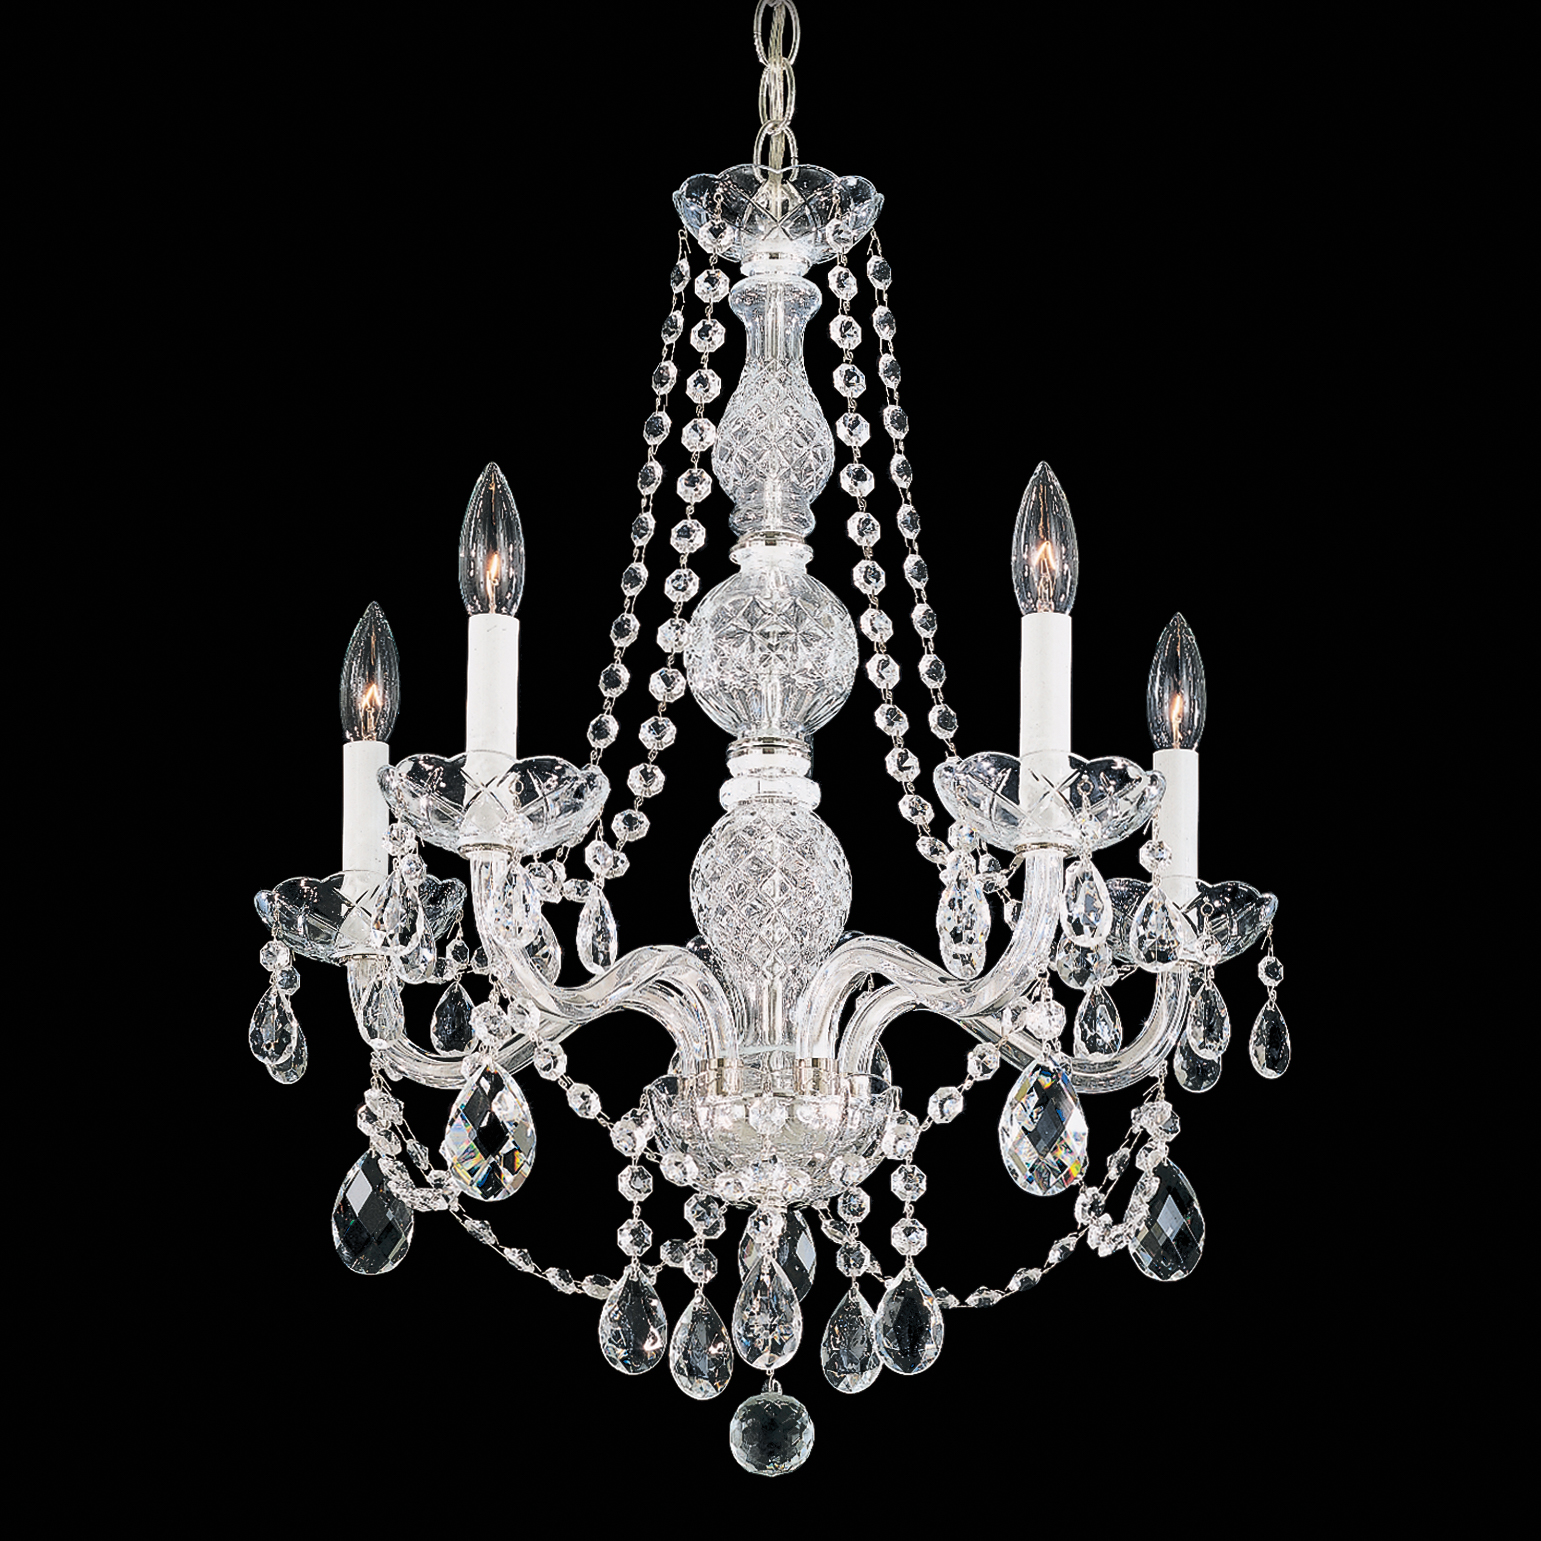 Schonbek Arlington Classic Chandelier Brooklyn,New Yorkfrom Accentuations Brand